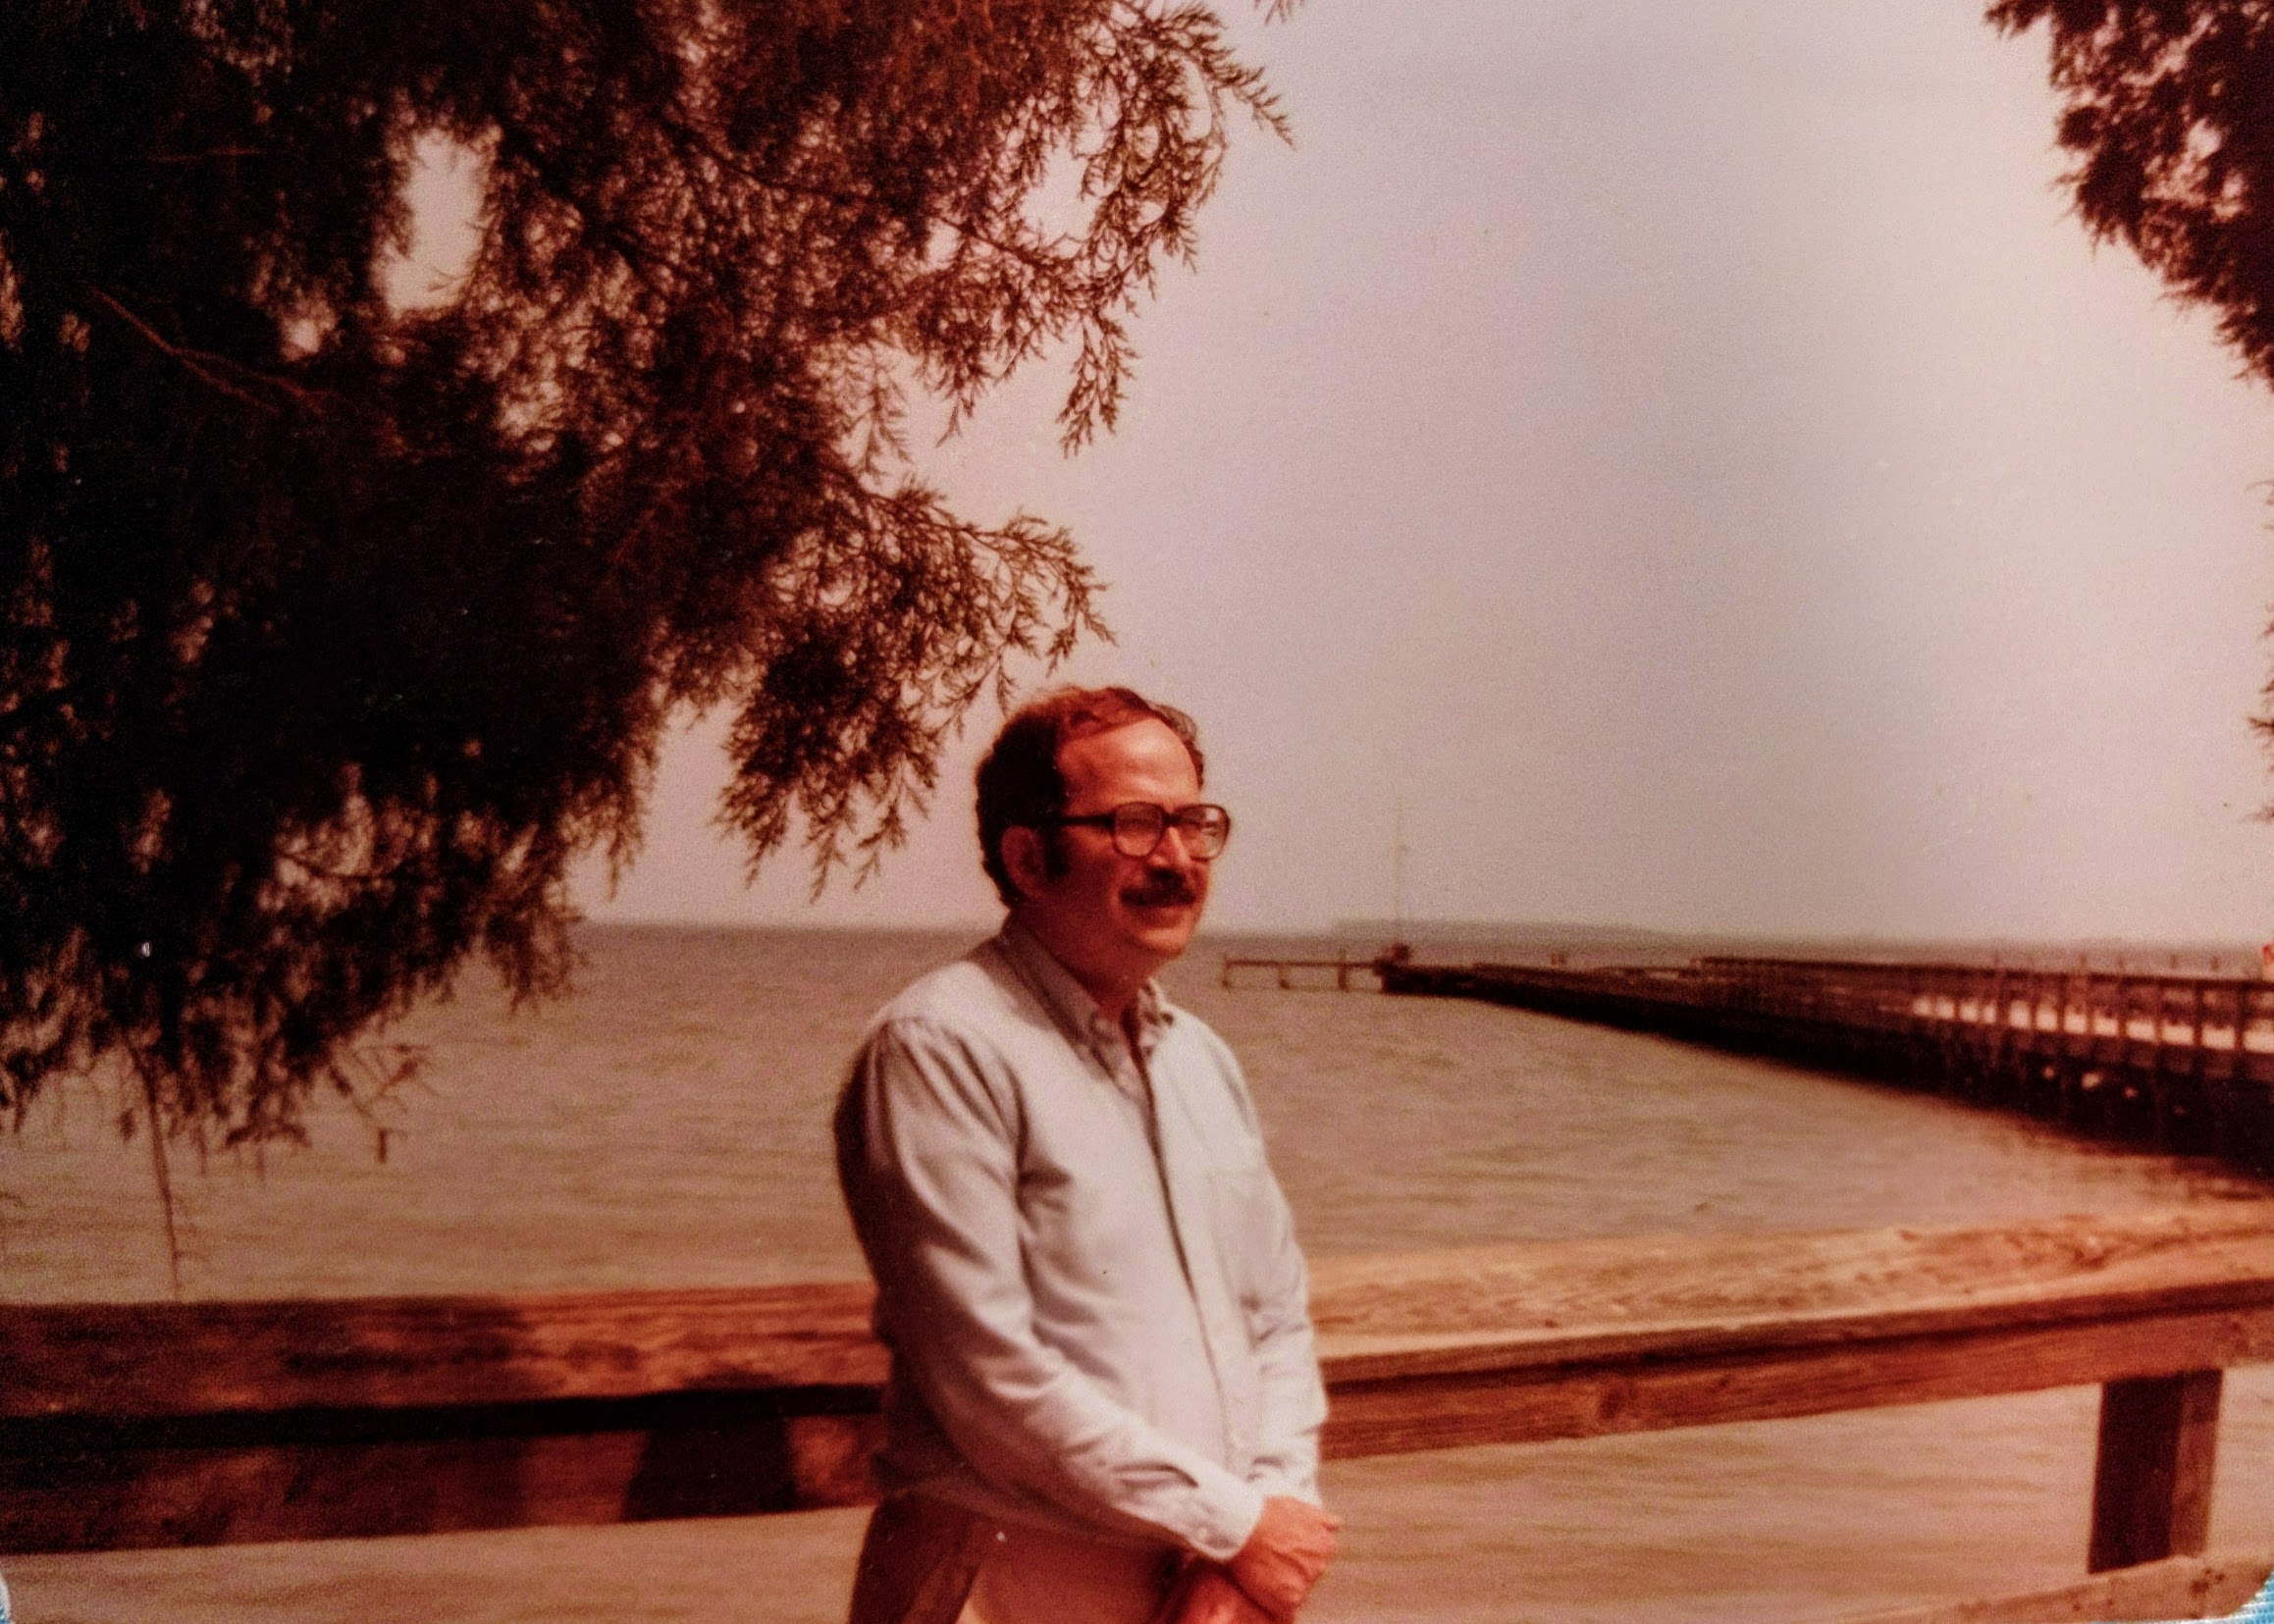 Ted Greenfeld circa 1980s at the Chesapeake Bay